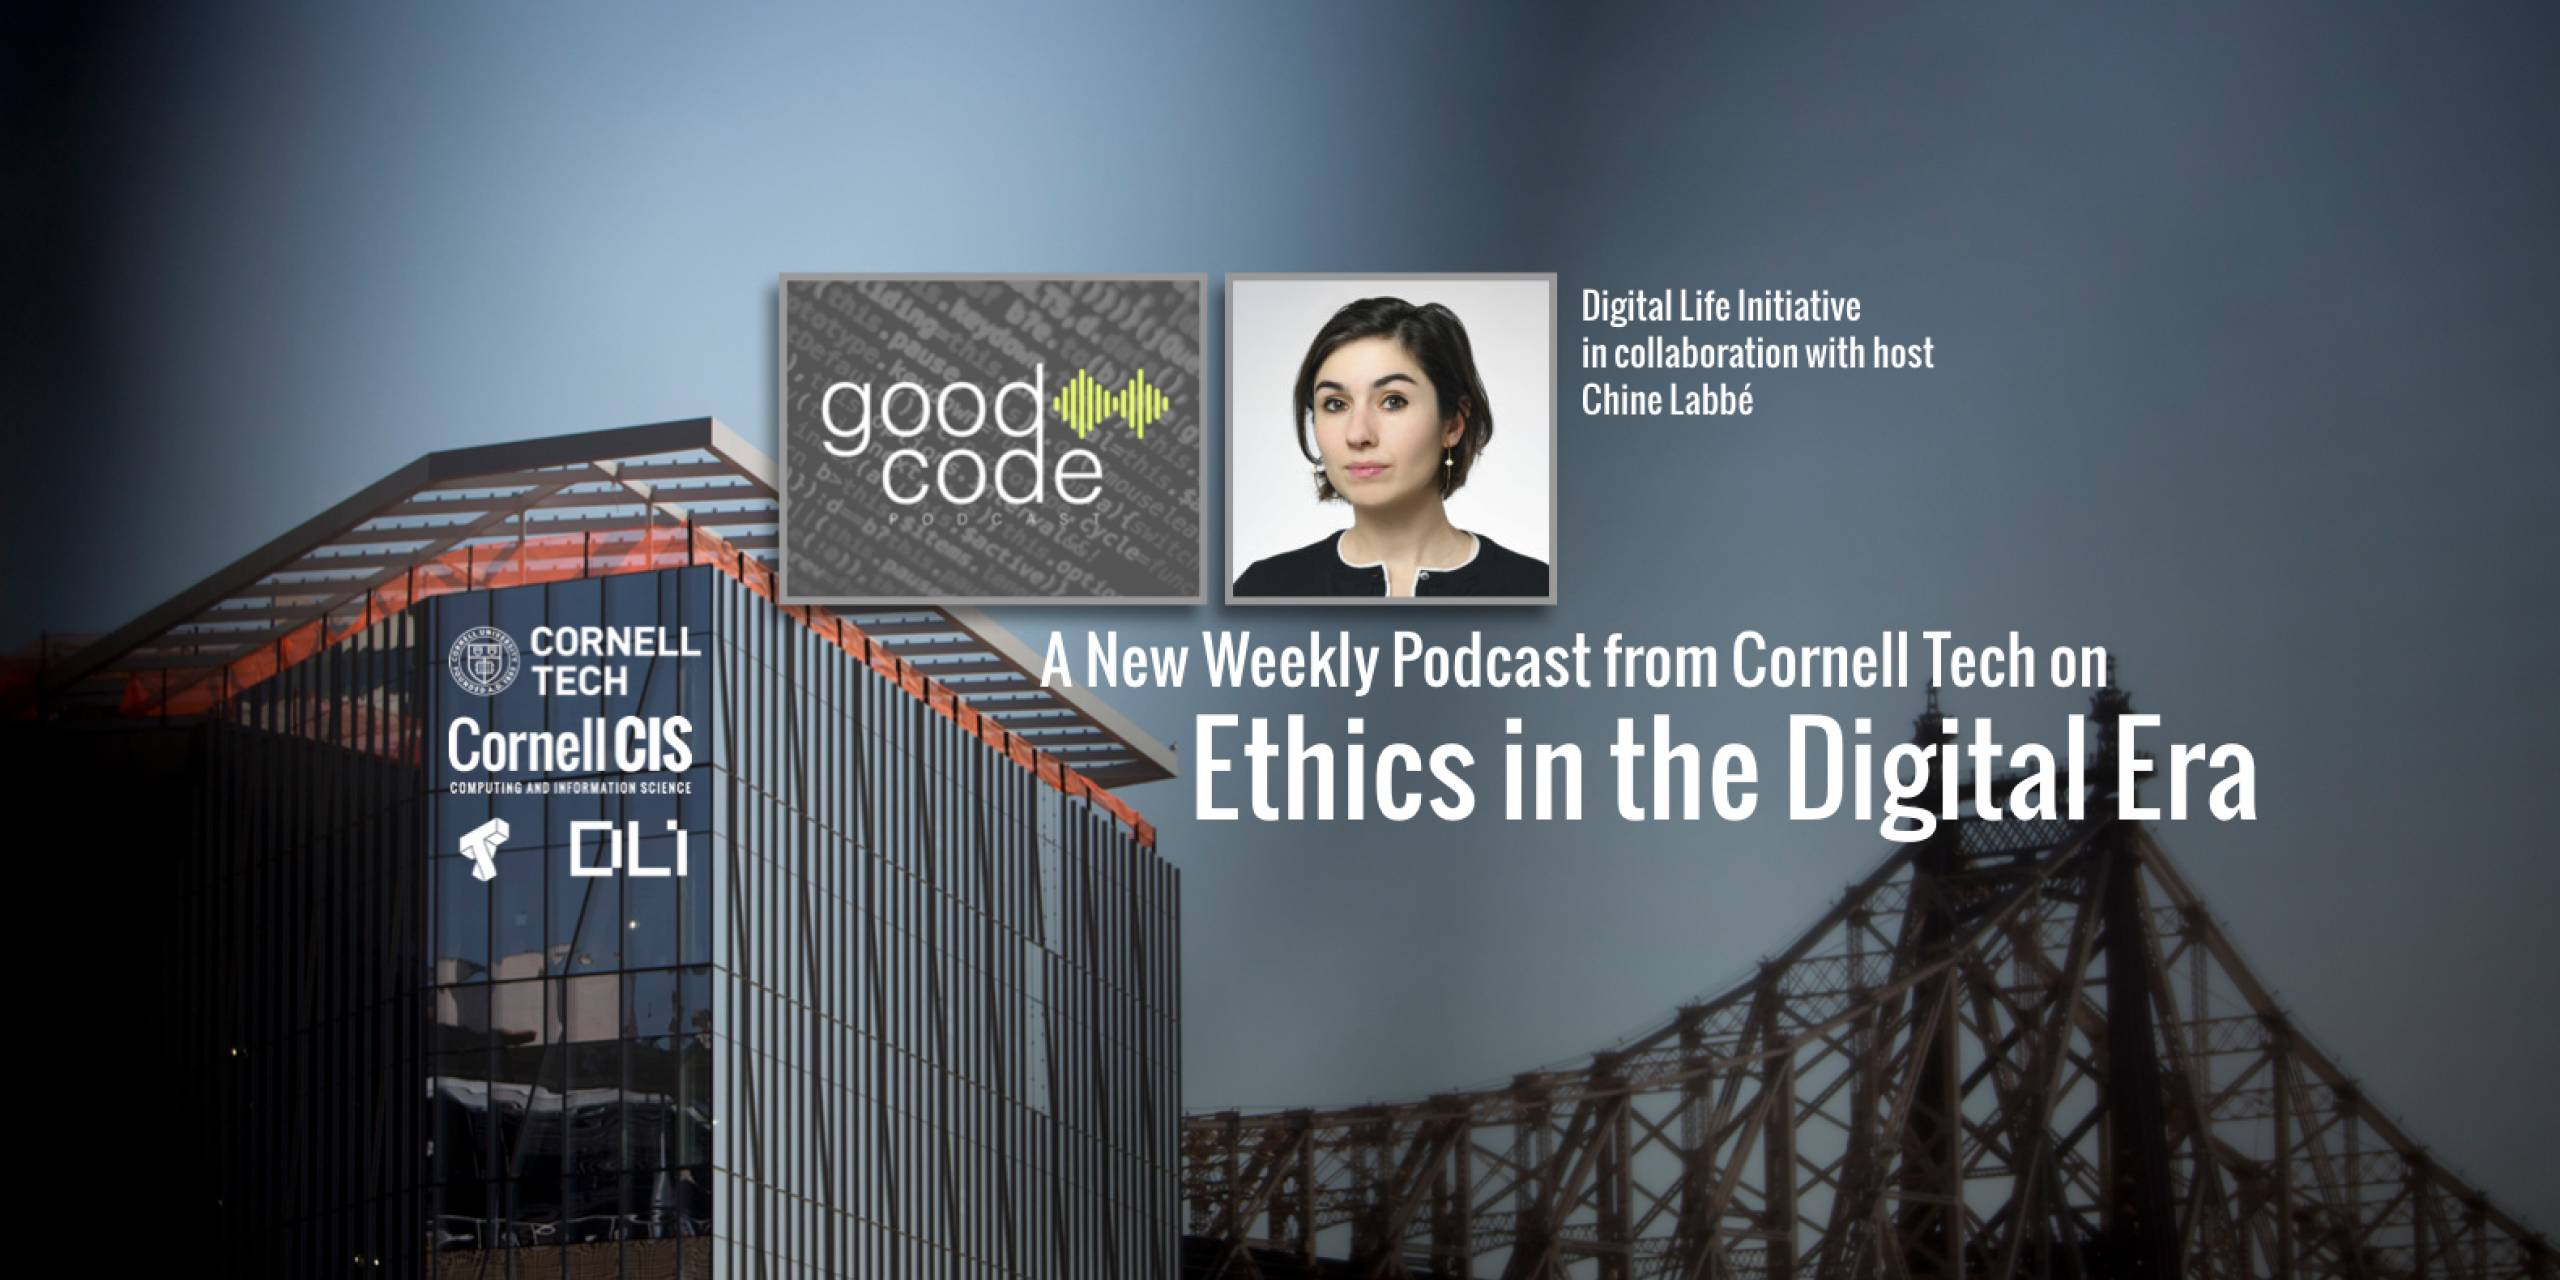 A New Weekly Podcast from Cornell Tech on Ethics in the Digital Era